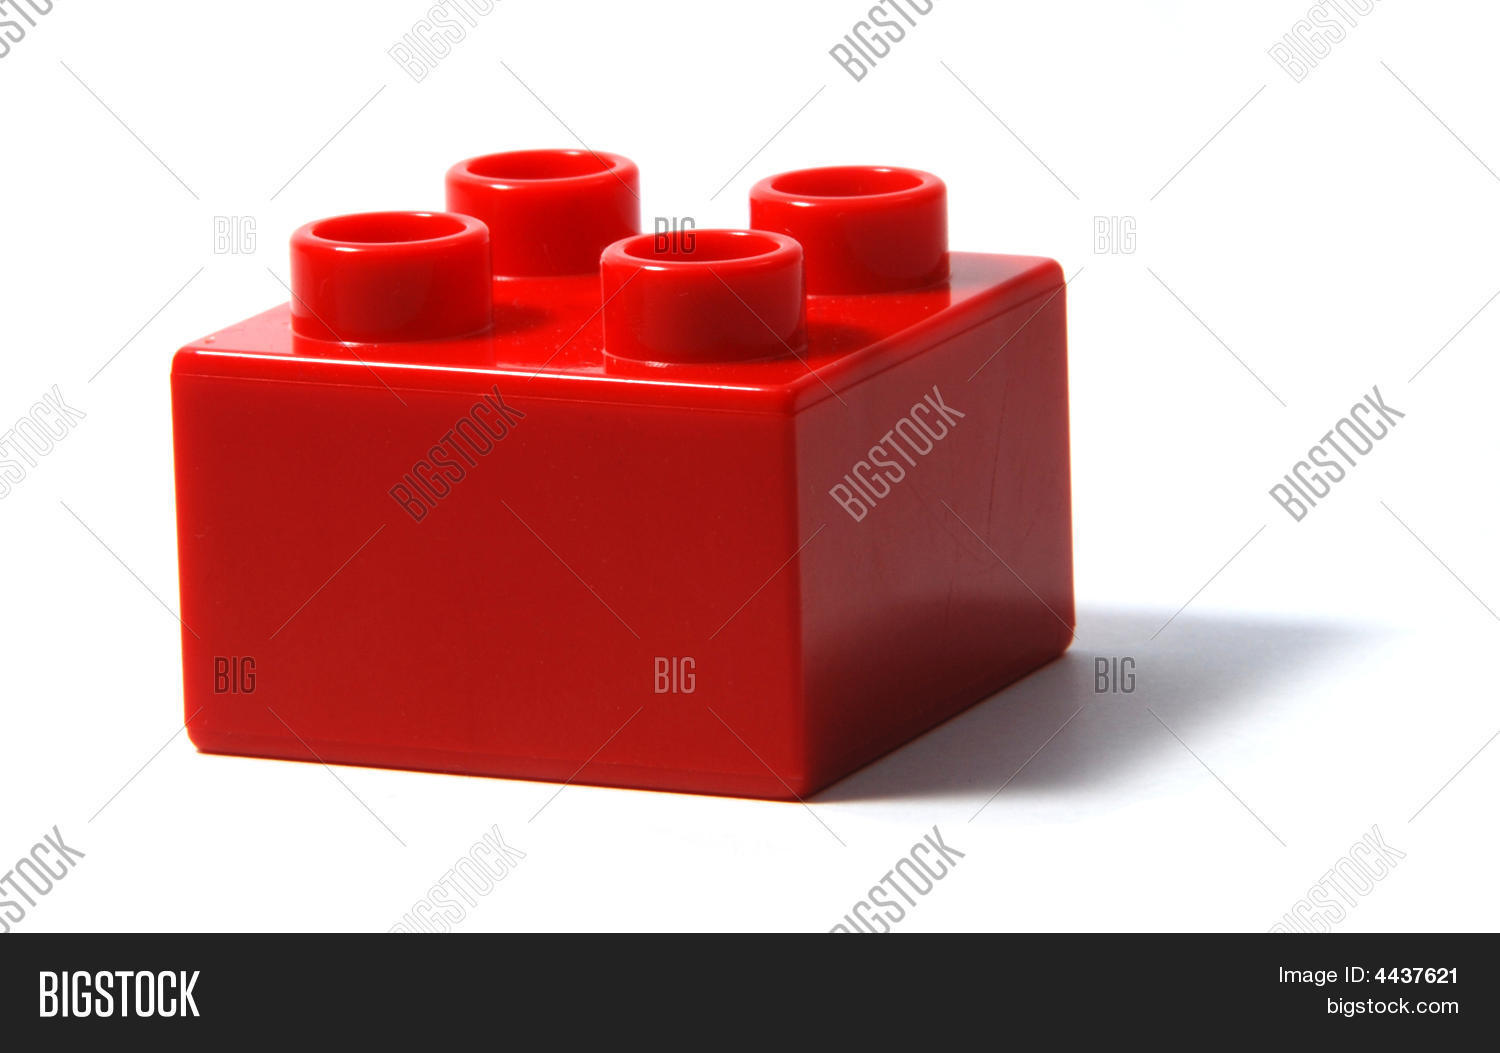 Red duplo building block image photo bigstock